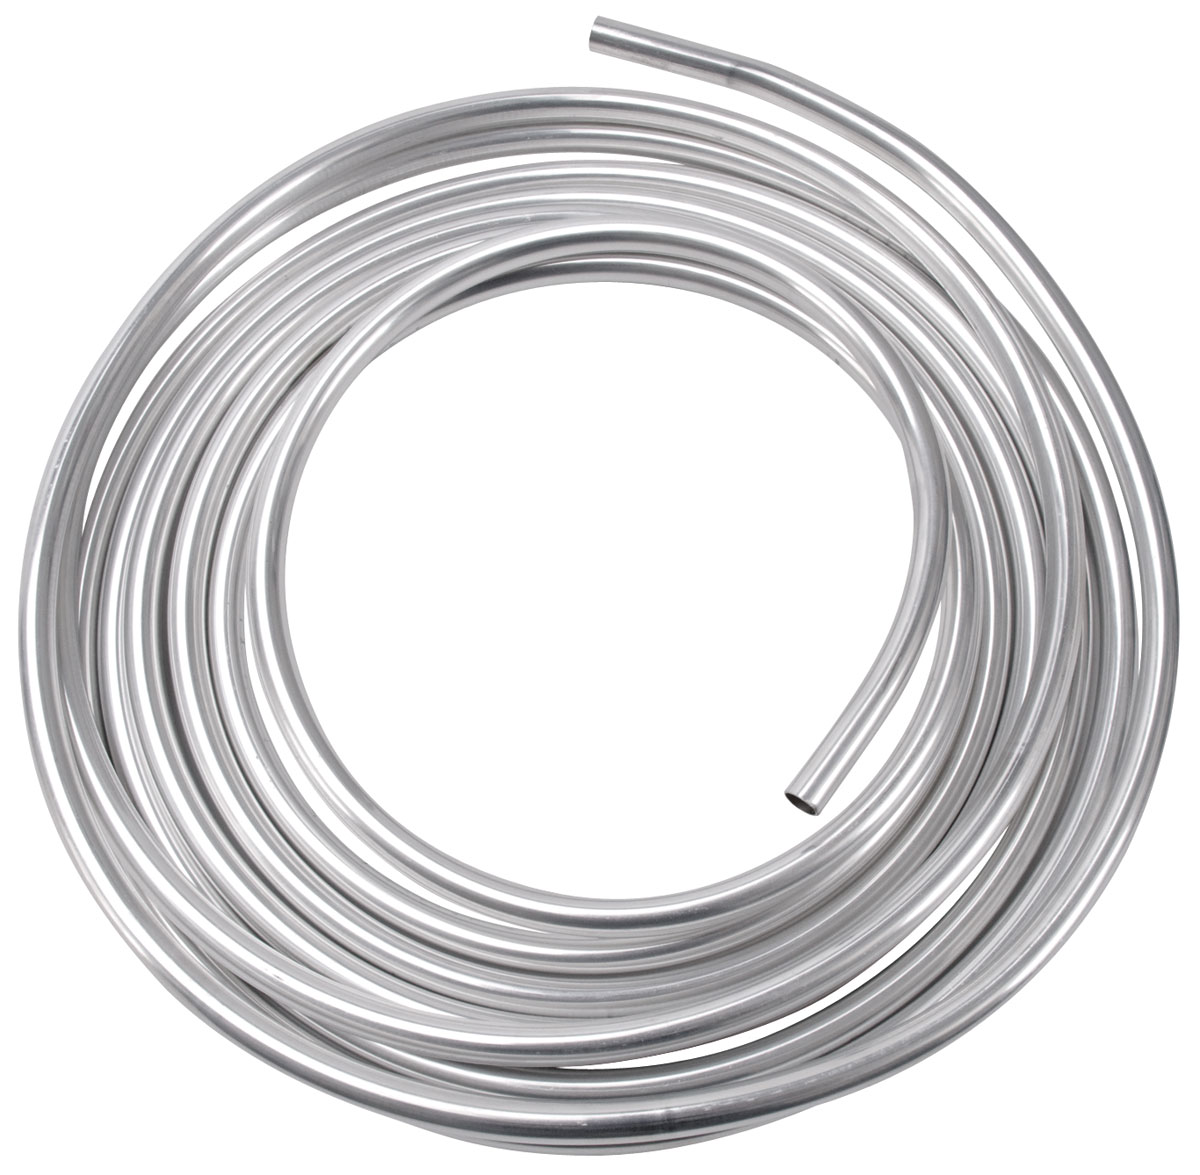 1964-1977 Chevelle Fuel Lines, Russell Aluminum 1/2